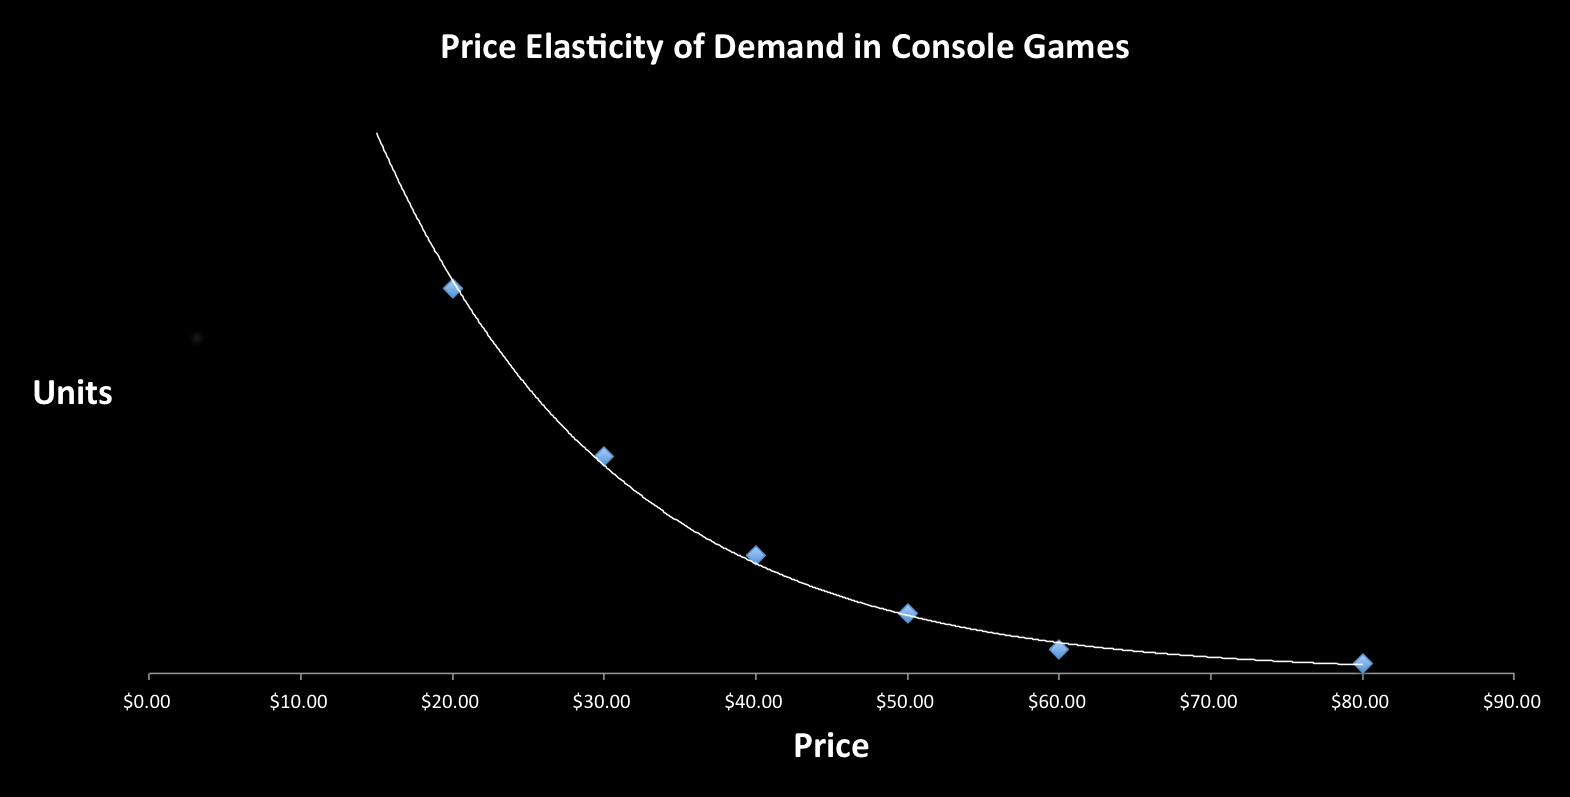 Would you buy Call of Duty at $500?